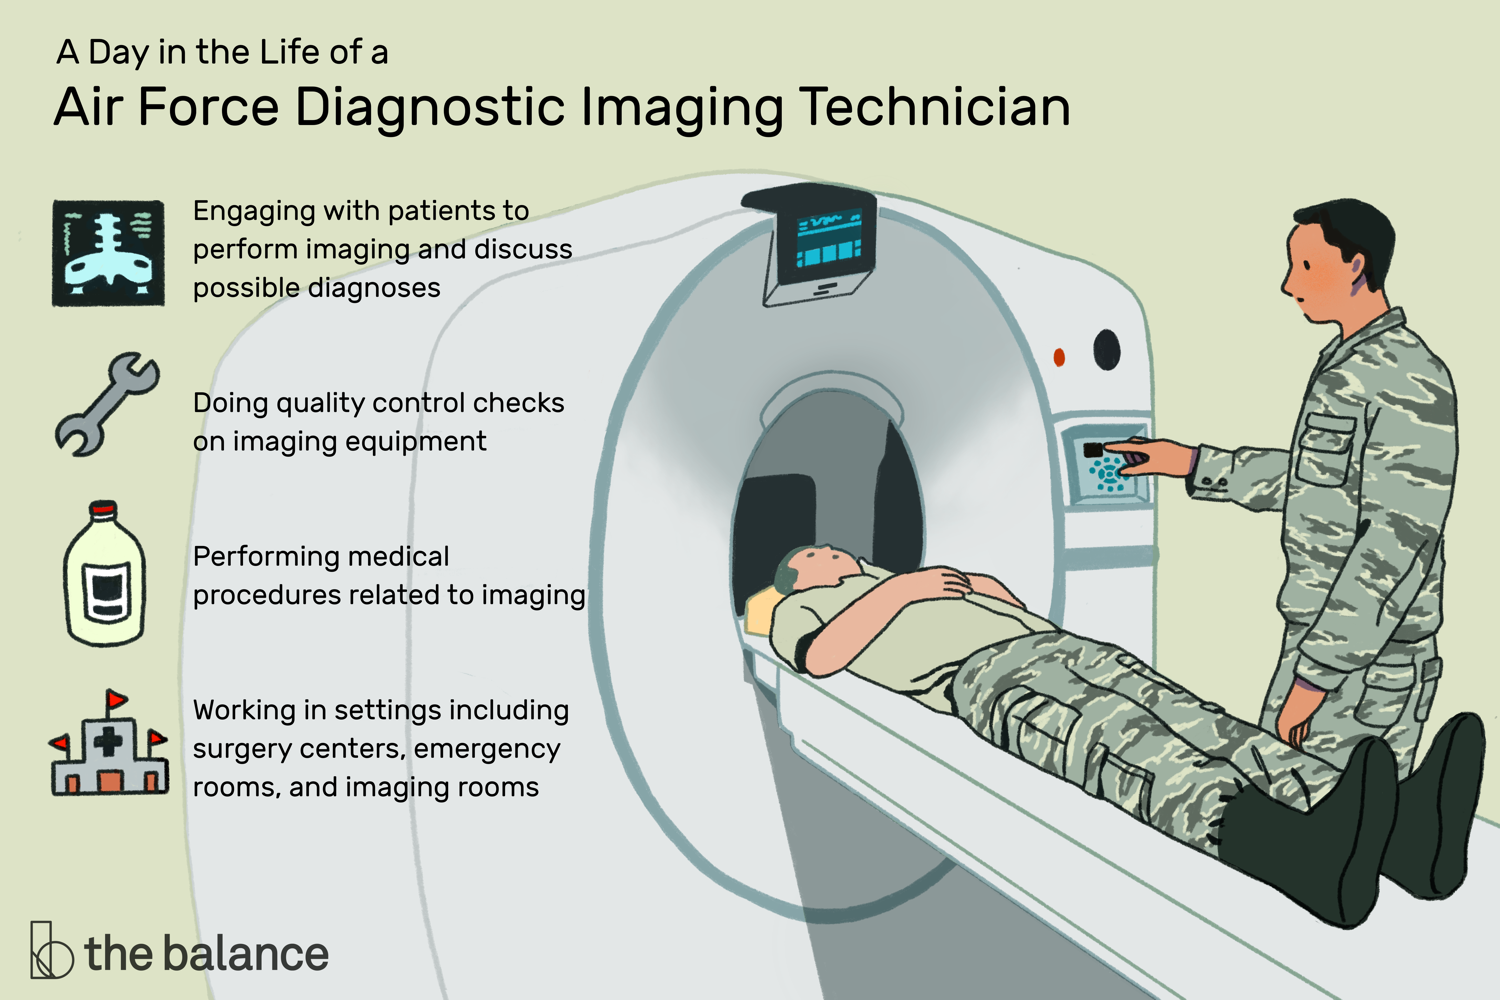 Air Force Diagnostic Imaging Tech Job Description Salary Skills More